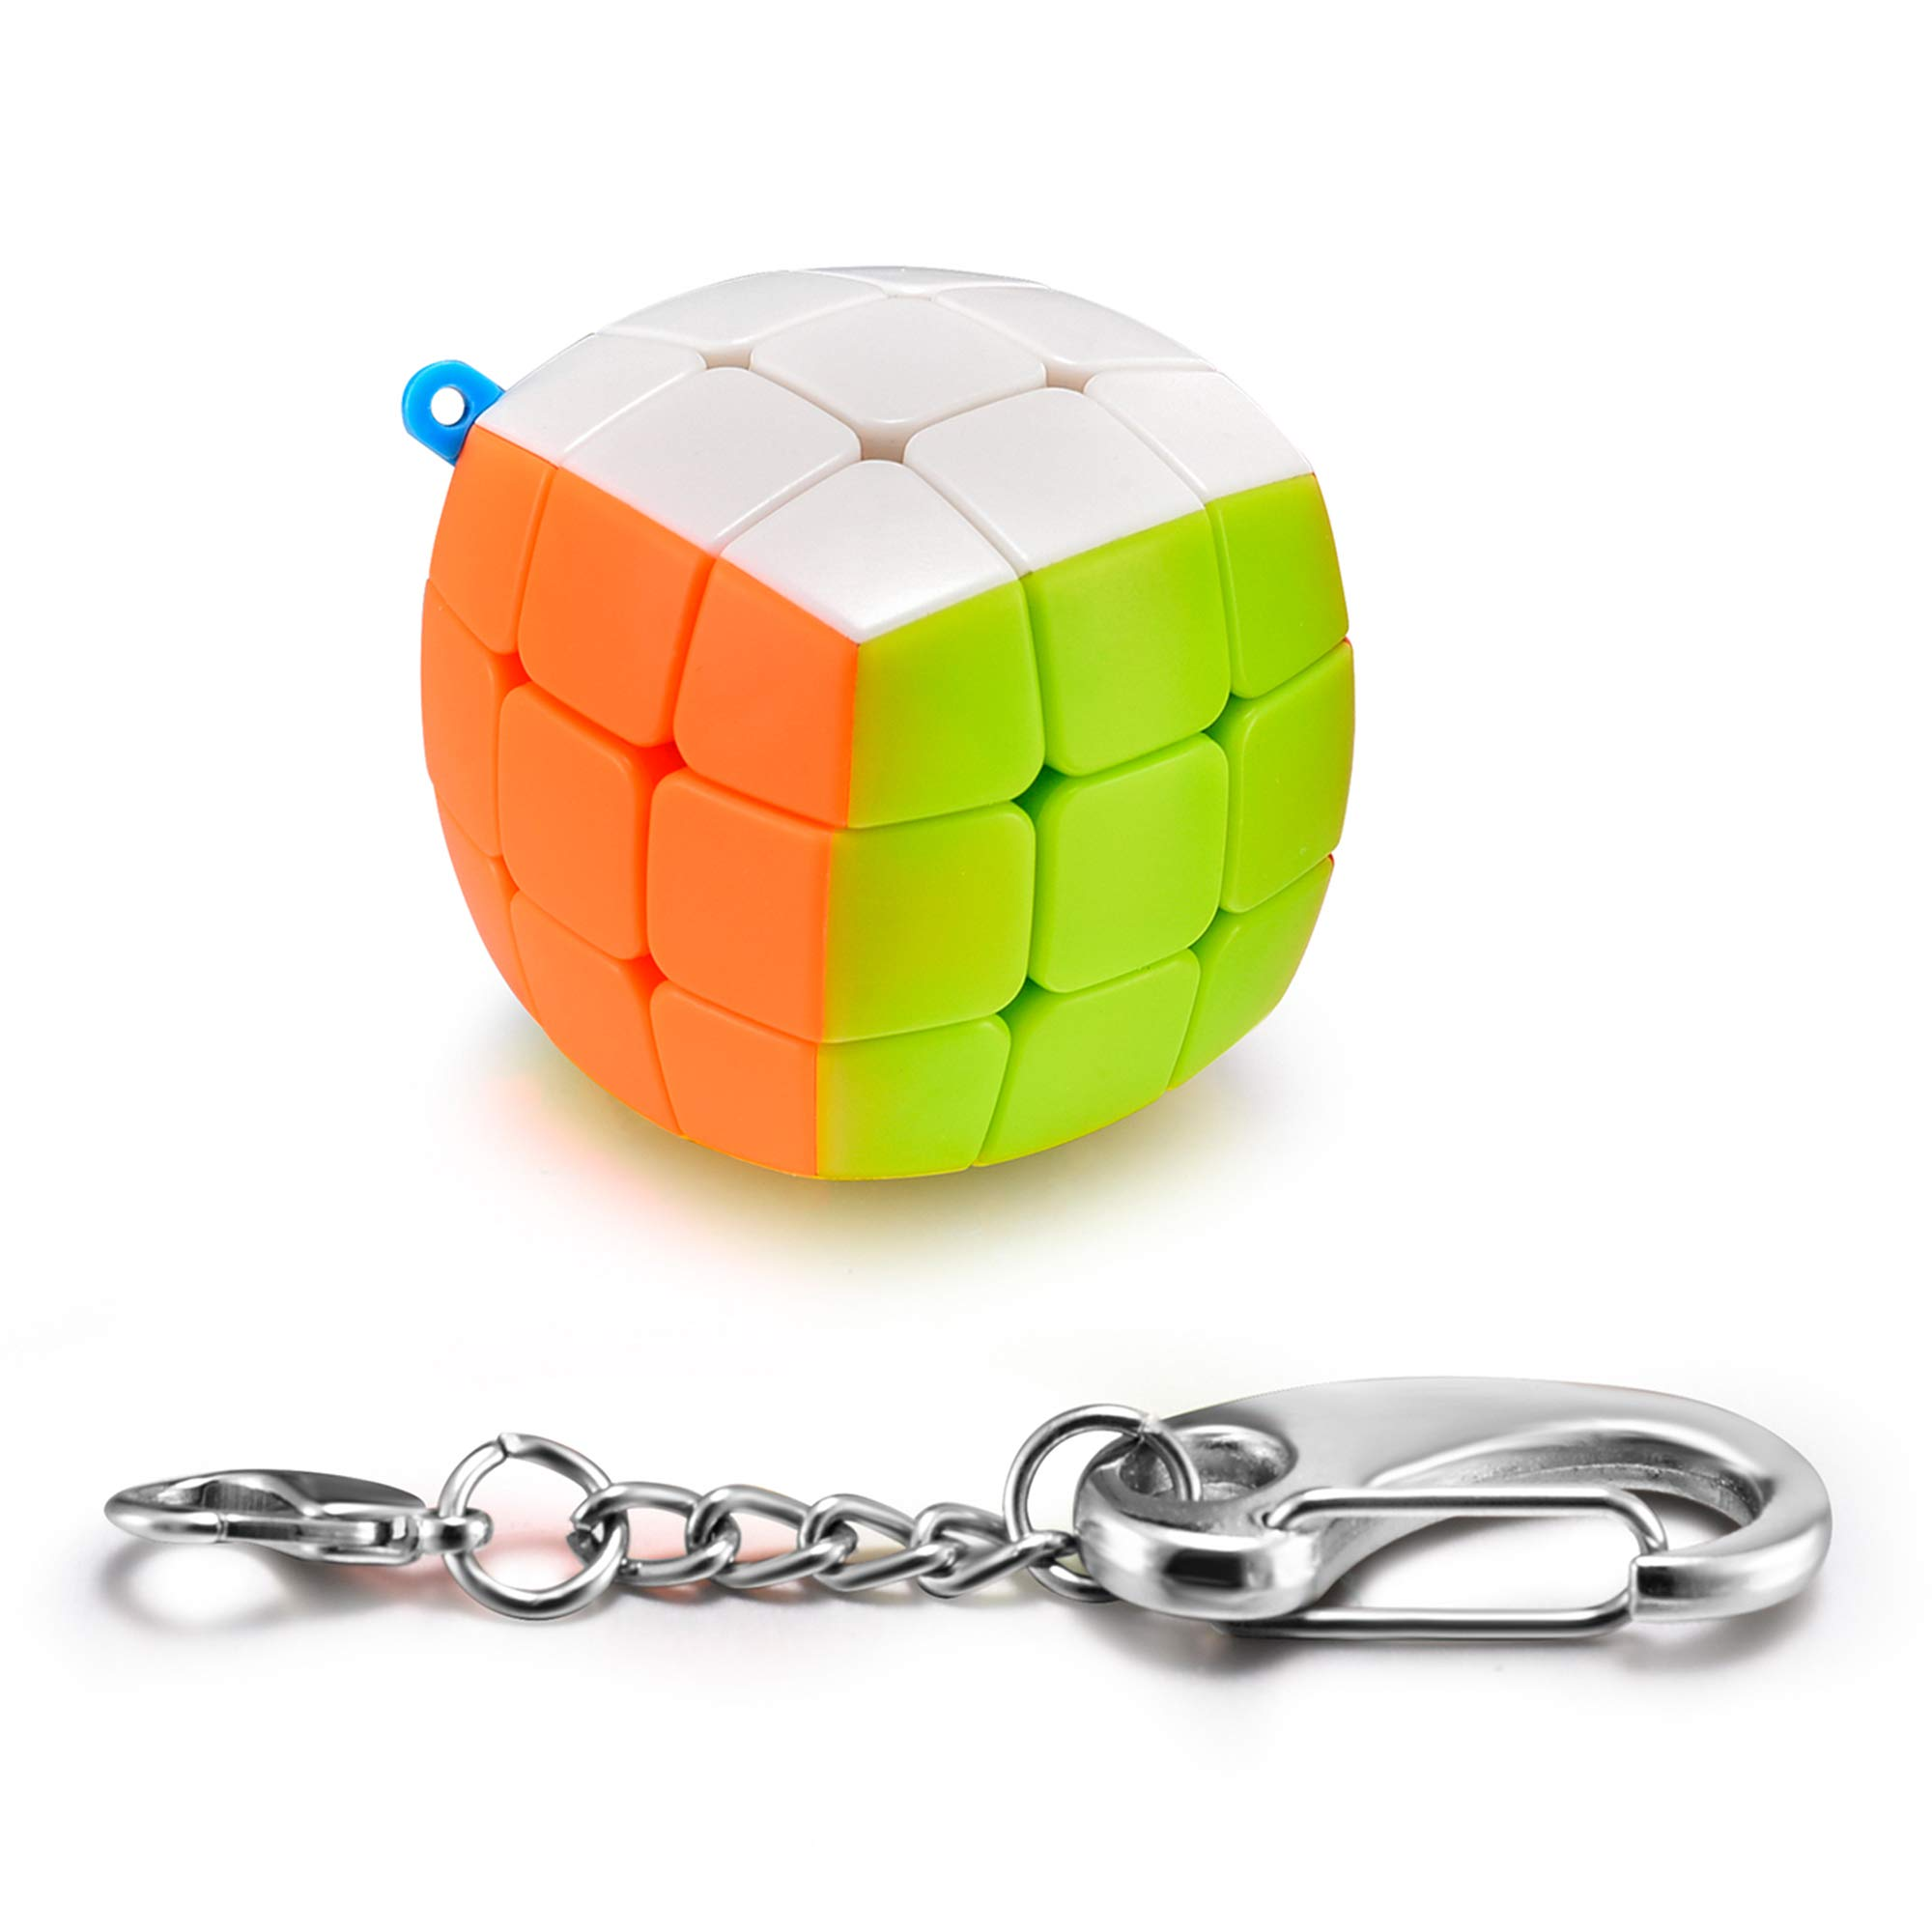 Speed Keychain Cube - Key Ring 3x3 Magic Cube Puzzle - Mini Toy Stickerless Toys Gifts Pocket Size for Kids